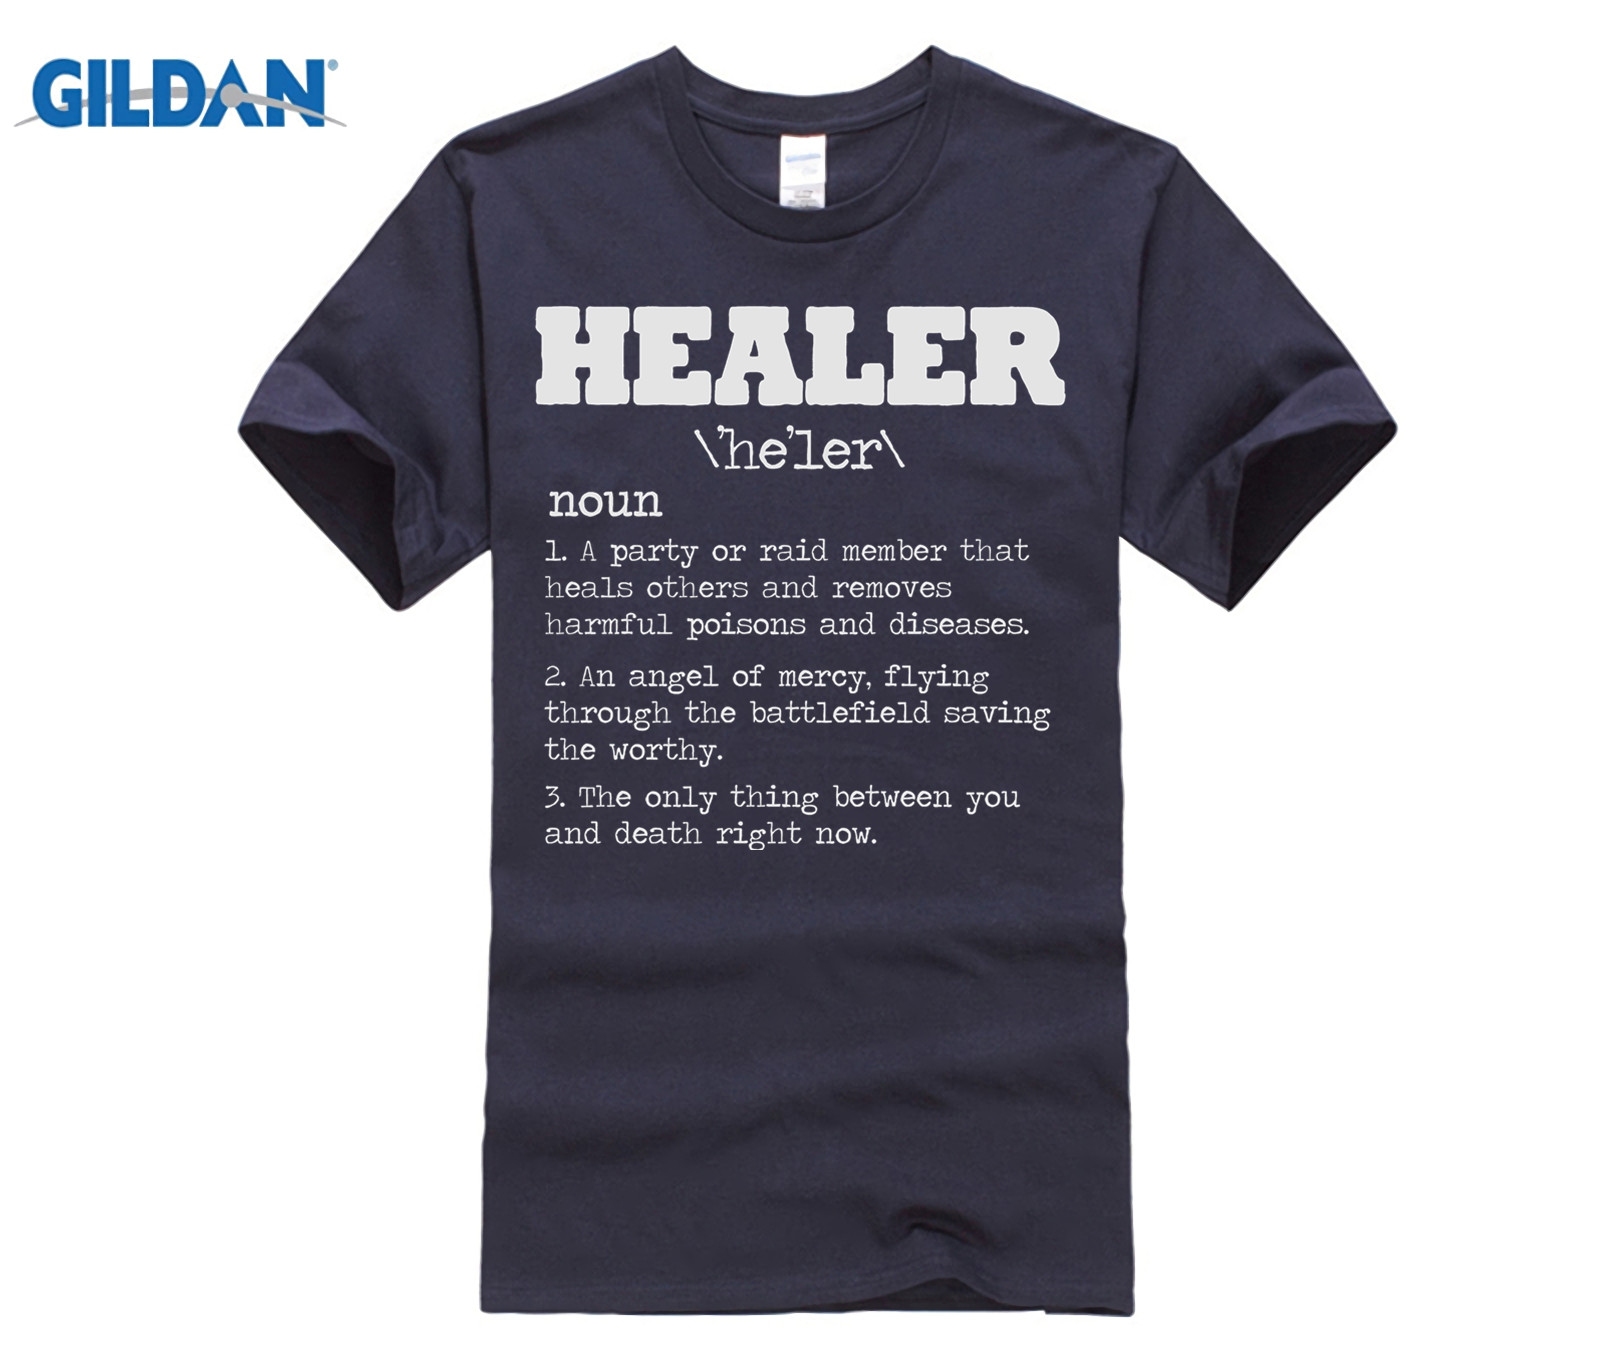 US $11 99 |GILDAN Healer RPG Gamer T Shirt Video Game MMORPG PC Gamer WoW  Horde Alliance Rogue Summer Cotton T Shirt Fashion-in T-Shirts from Men's